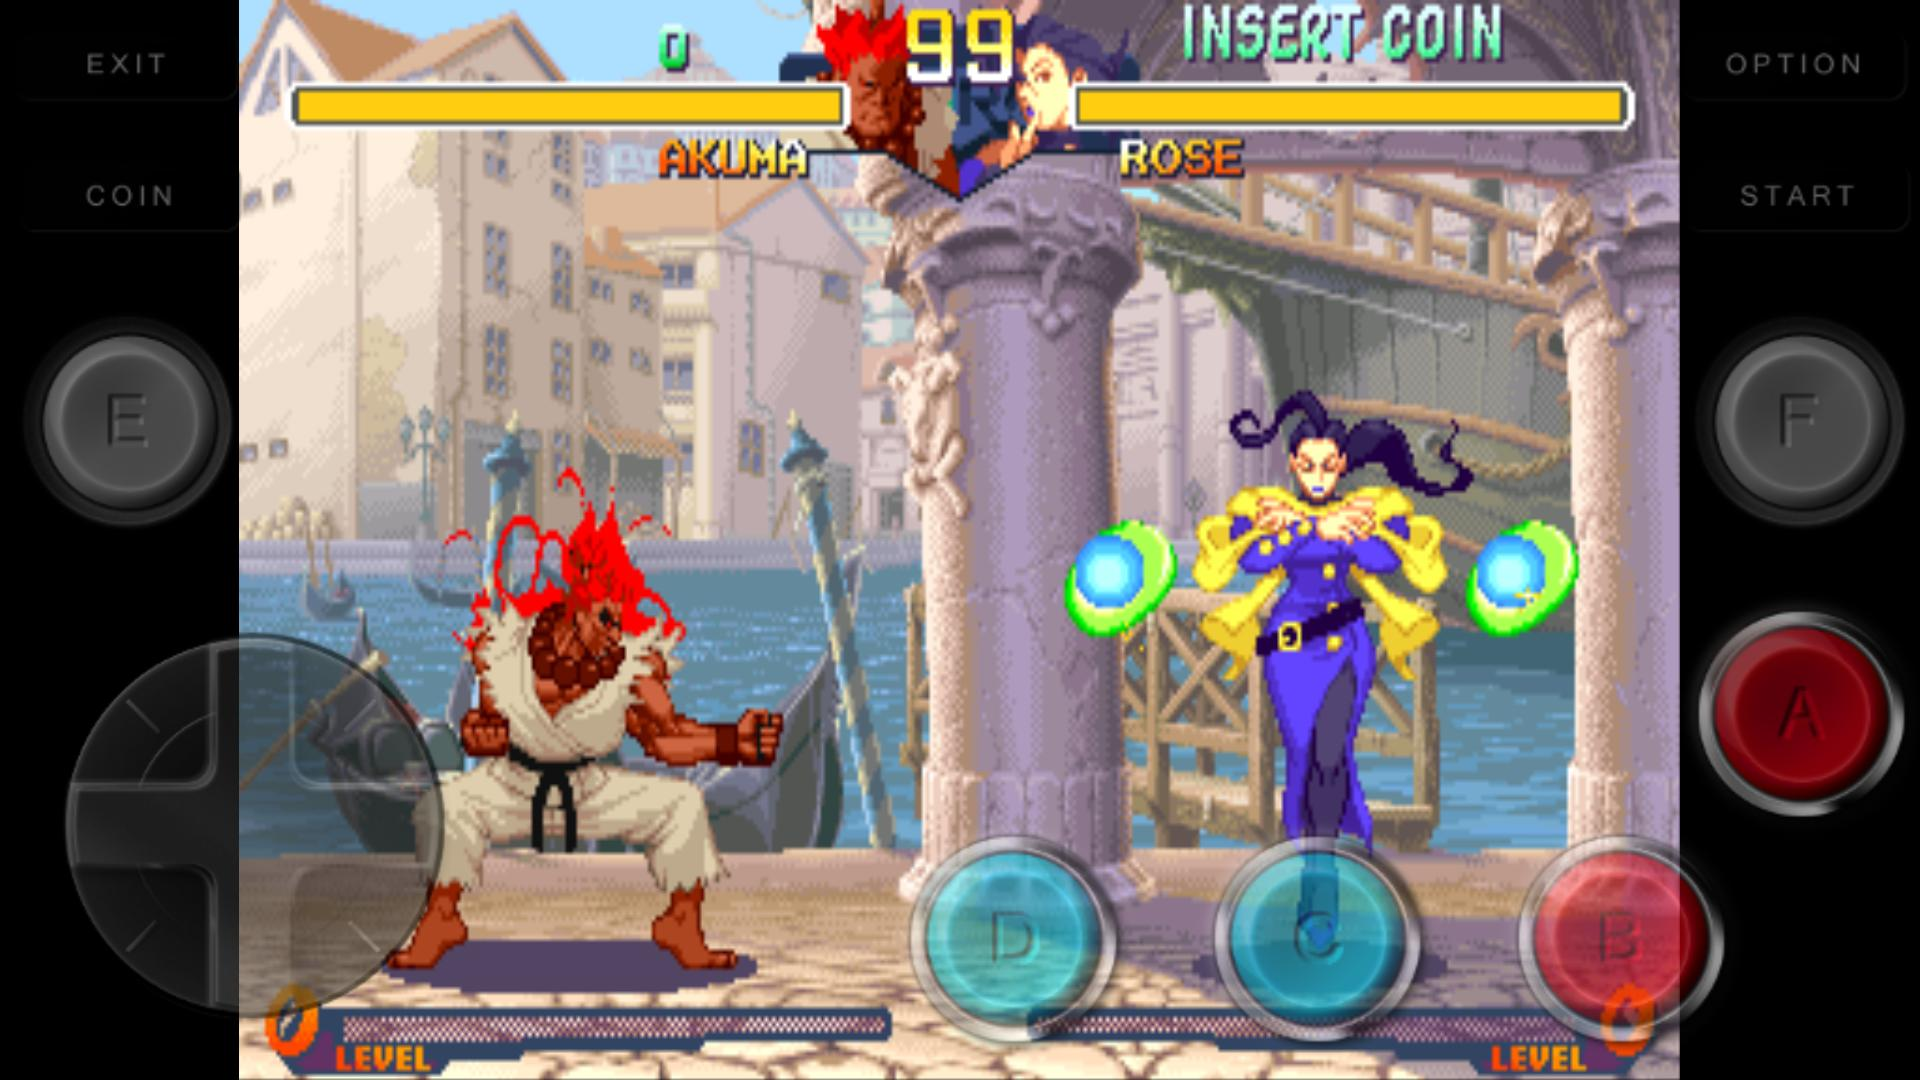 Code Street Fighter Zero 2 Alpha for Android - APK Download